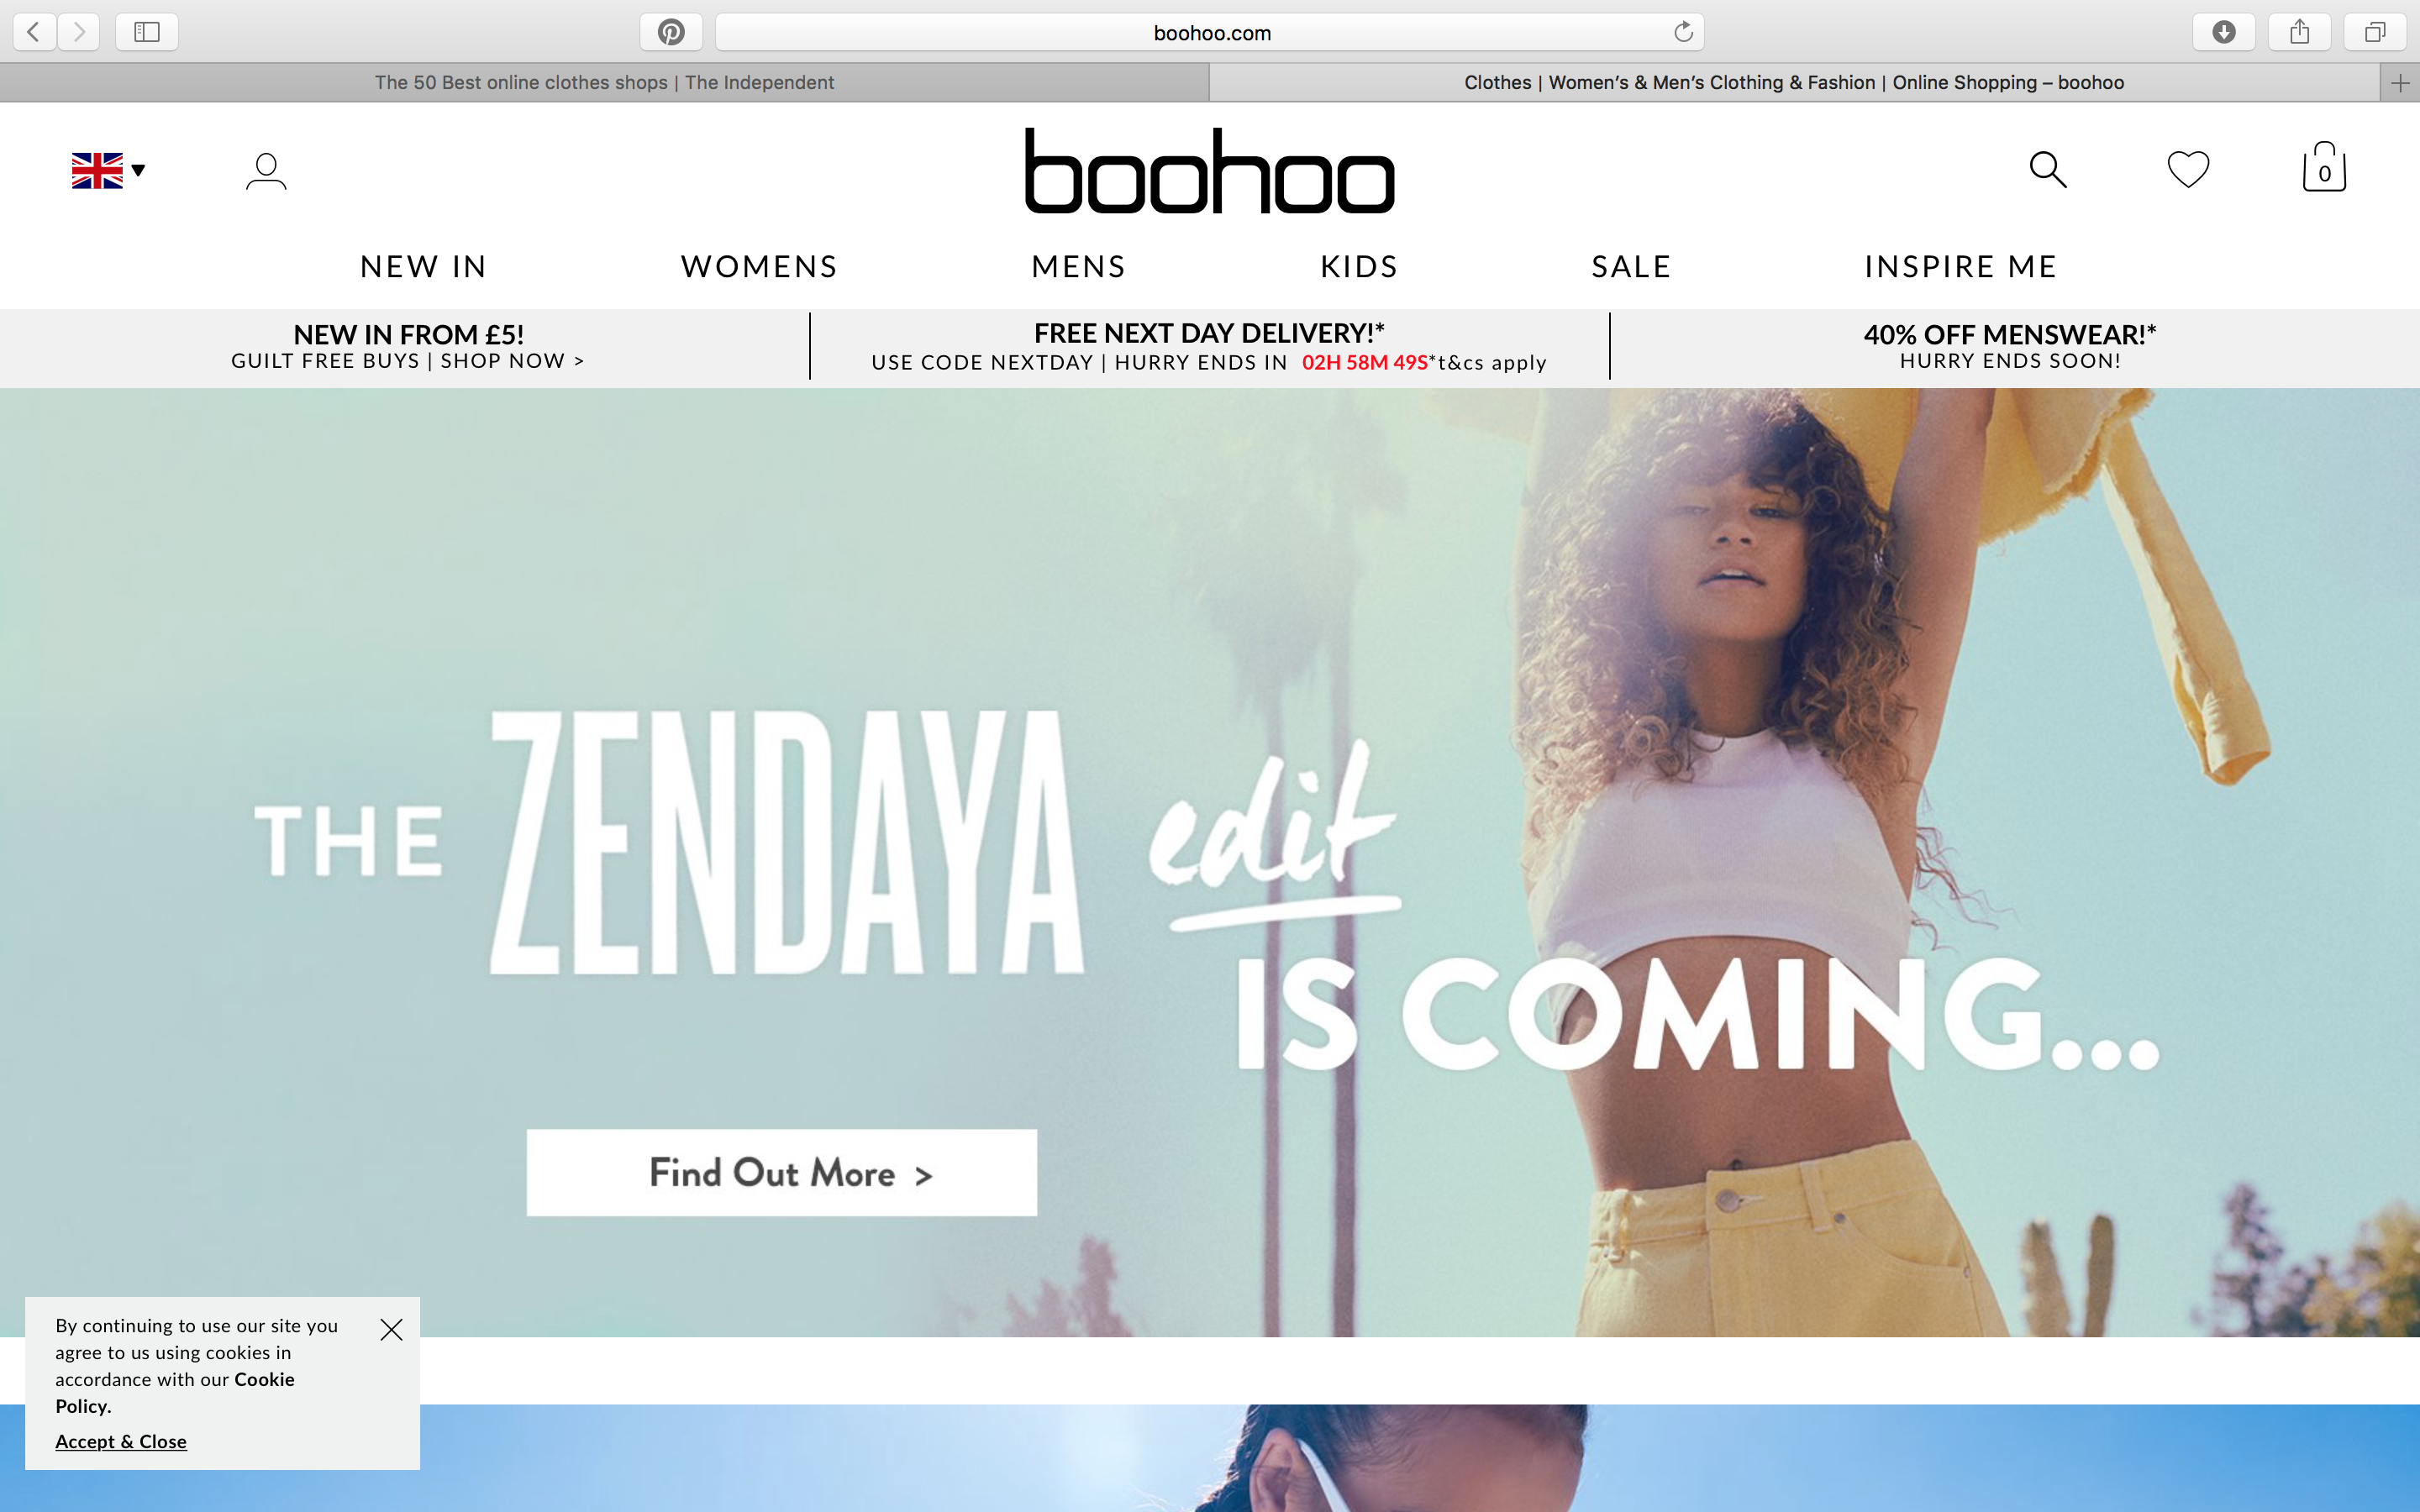 98b04409d79 boohoo | Fashion e-commerce landing pages | Online shopping clothes ...